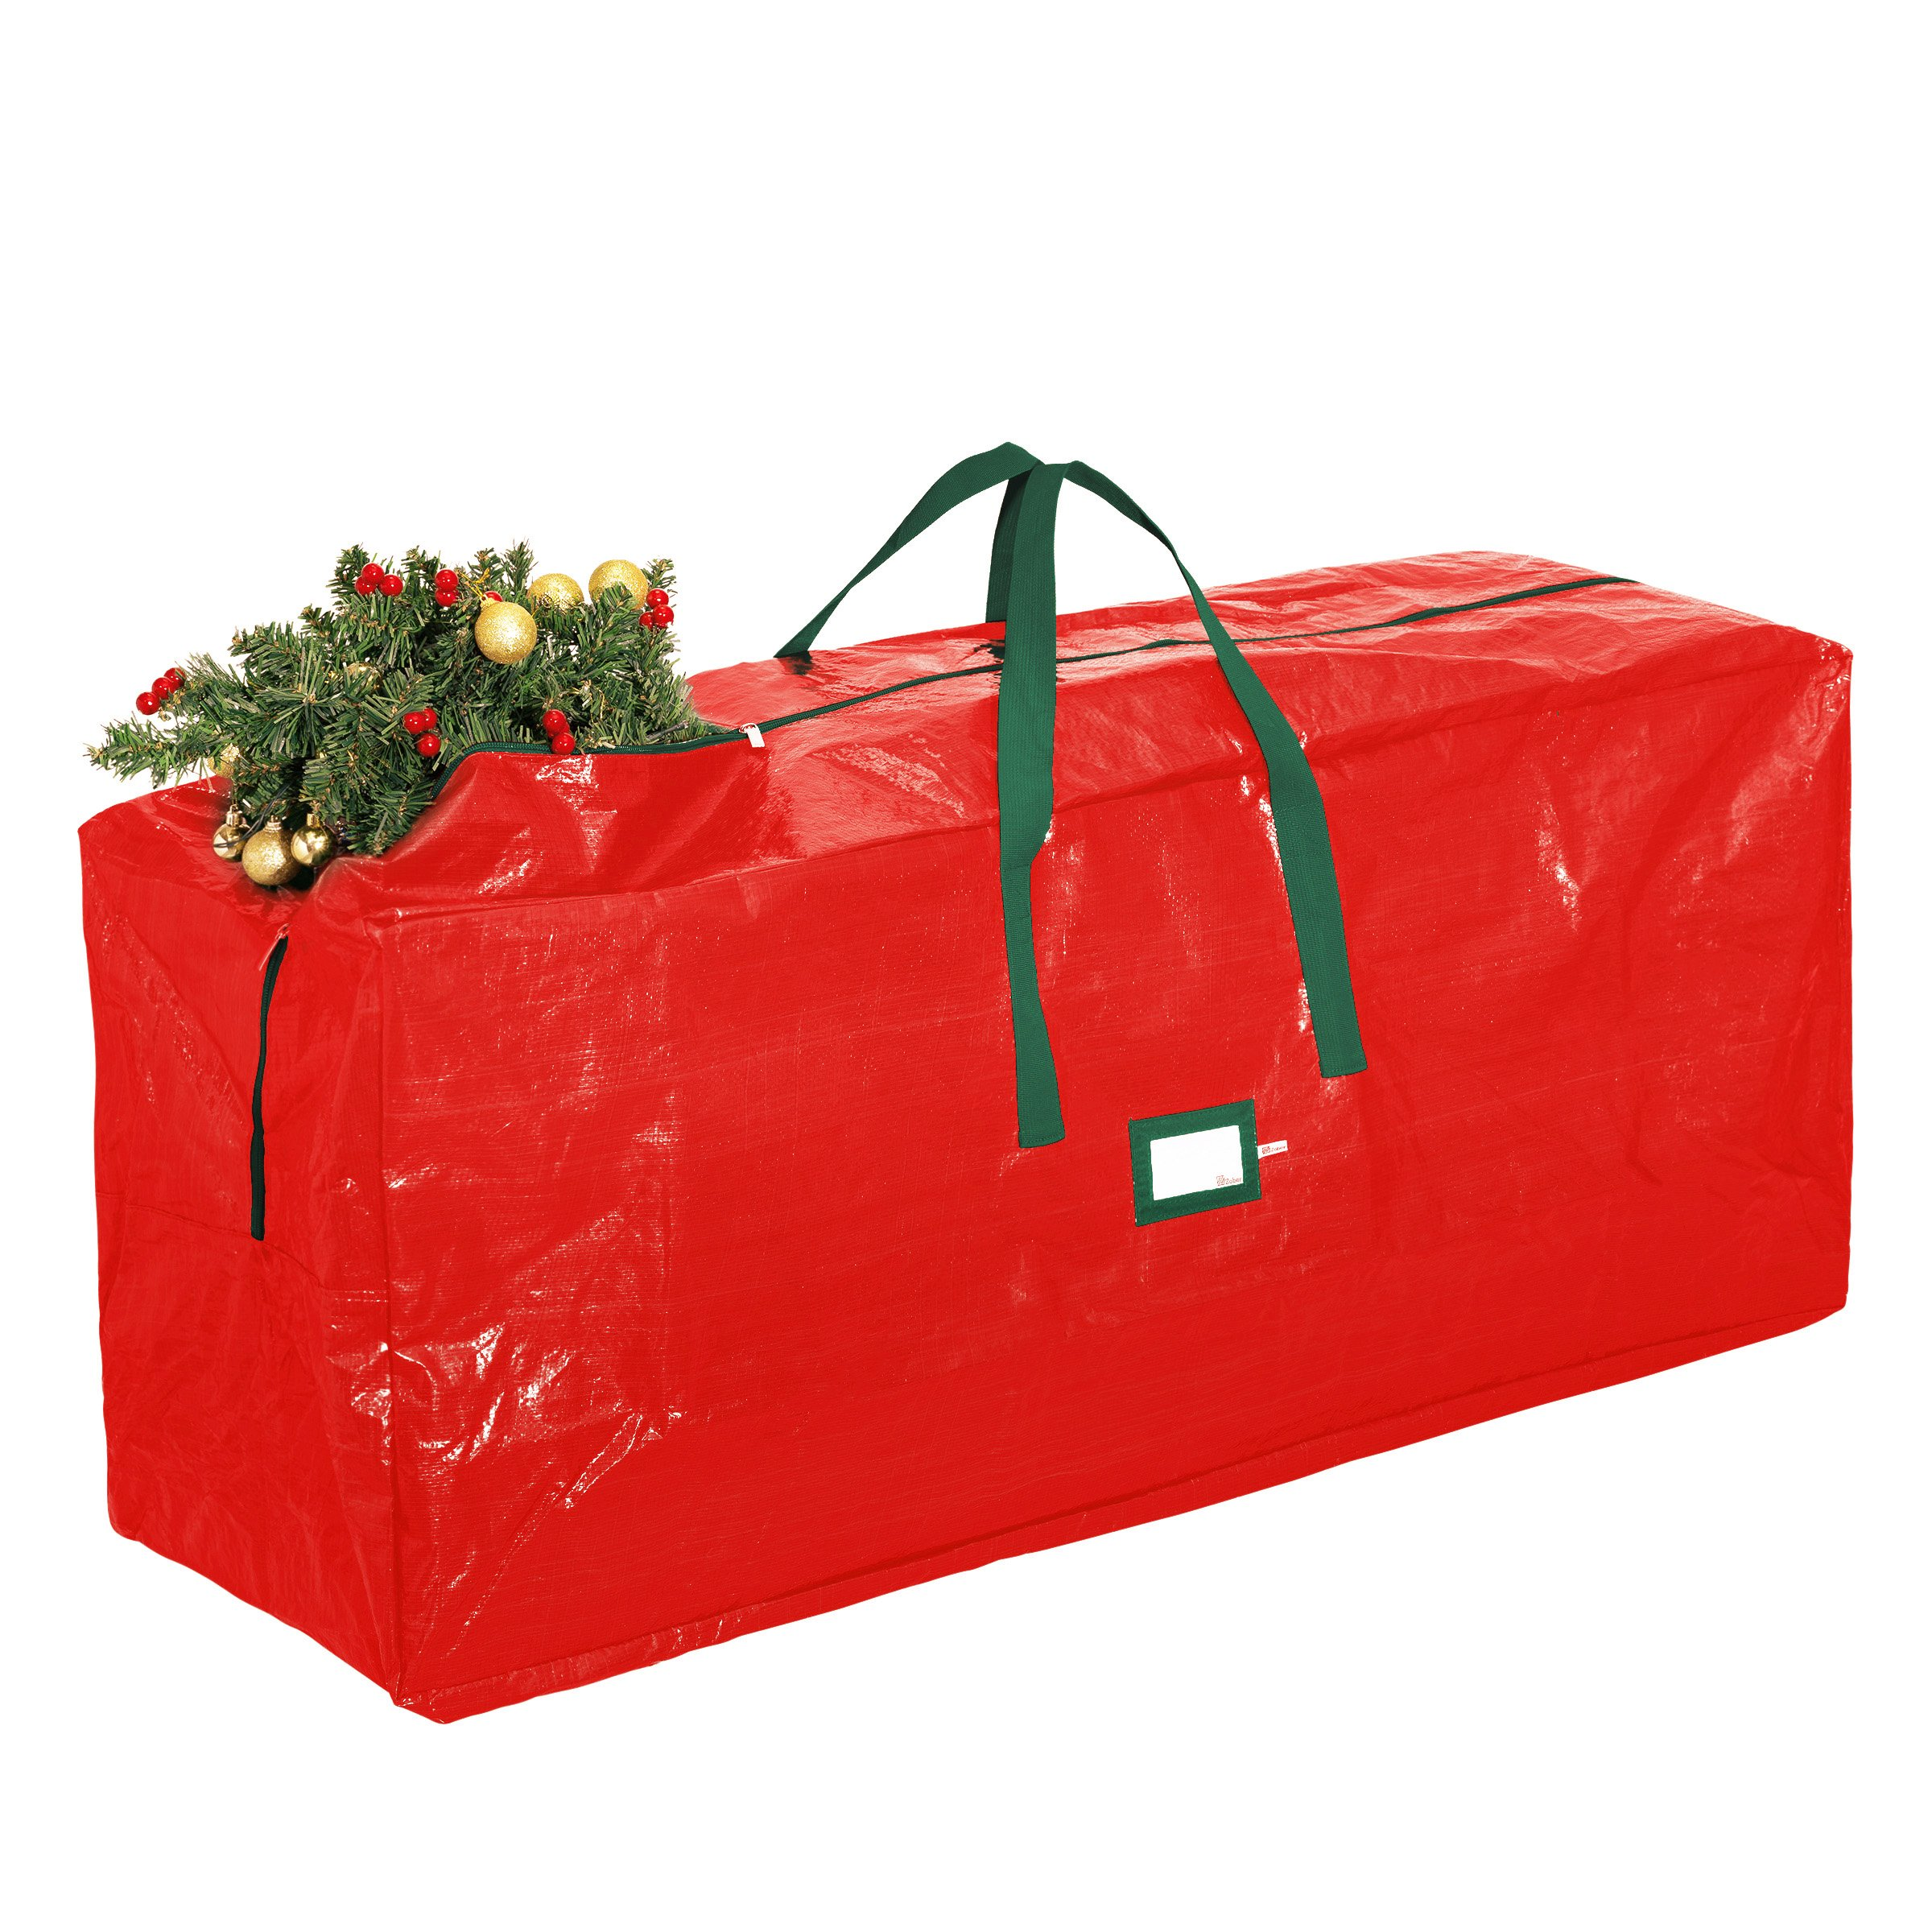 Zober Christmas Tree Storage Bag - Artificial Up to 7' Christmas Tree Organizer for Un-Assembled Trees, with Sleek Zipper - Also Accommodates Holiday Inflatables | 48''L 20''W 15''D (Red) by ZOBER